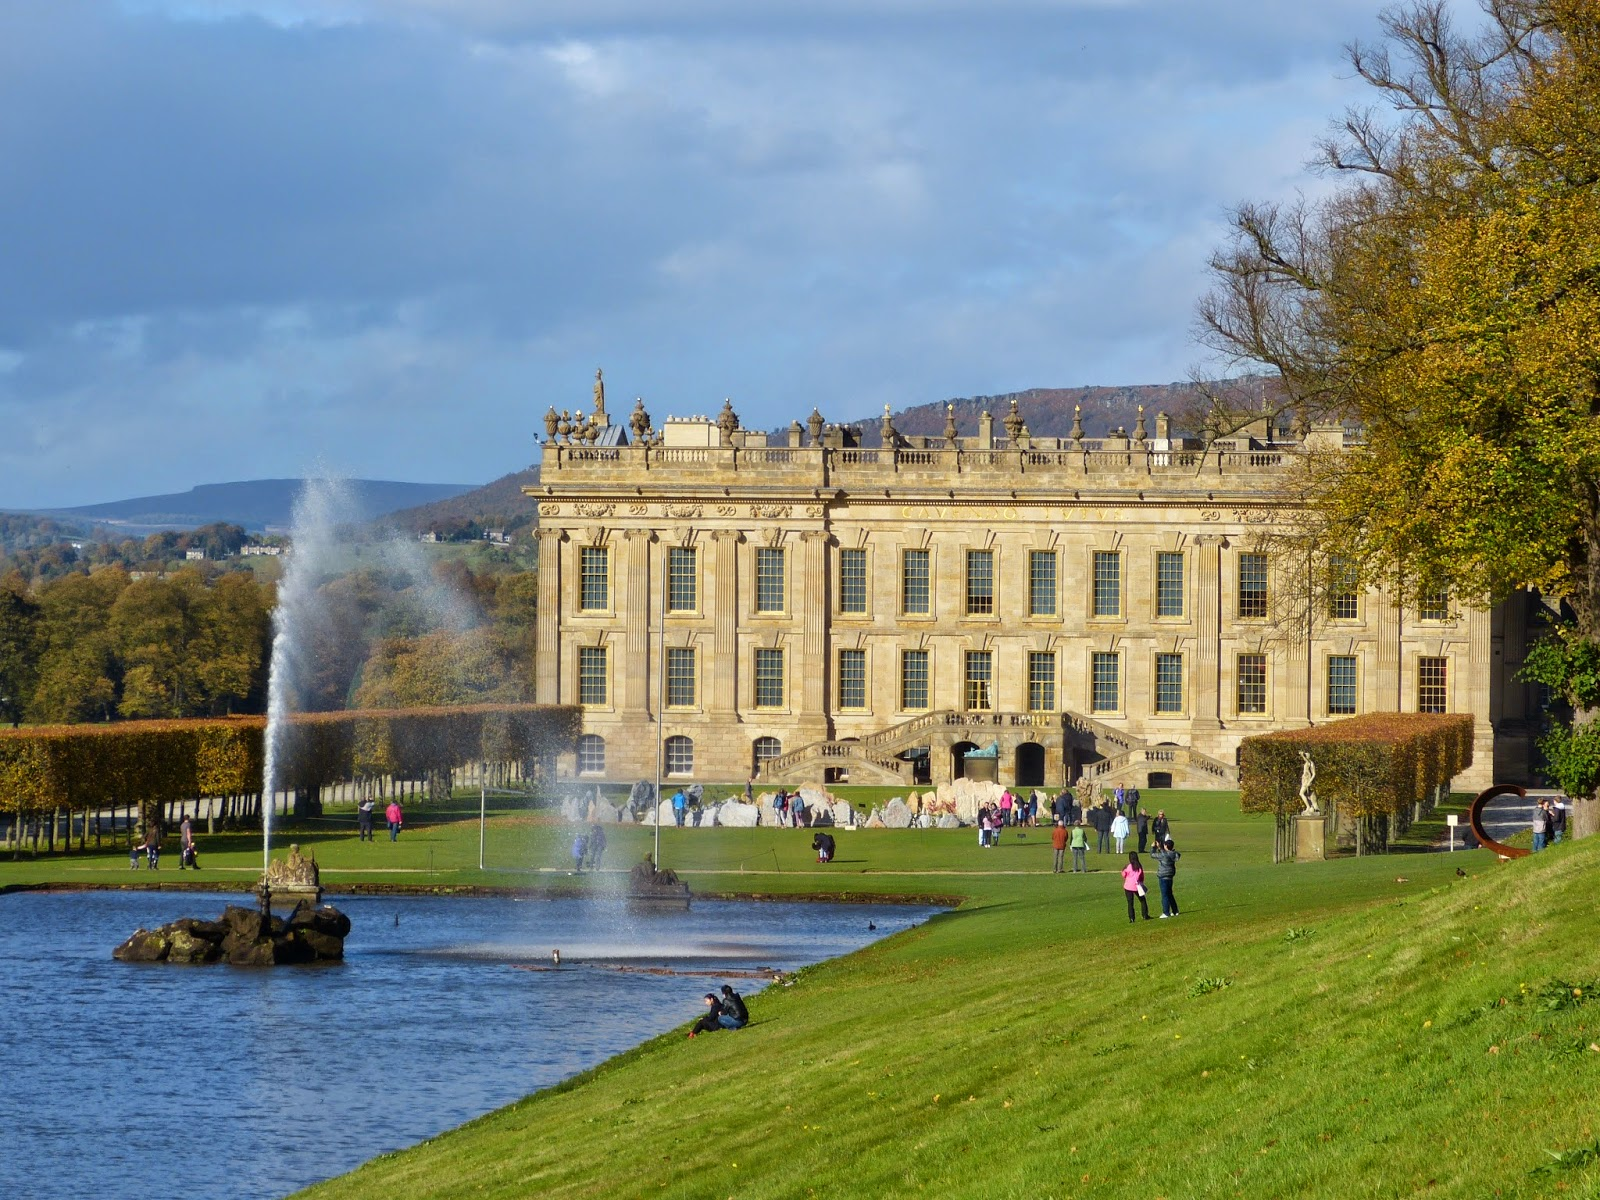 The Emperor Fountain, Chatsworth